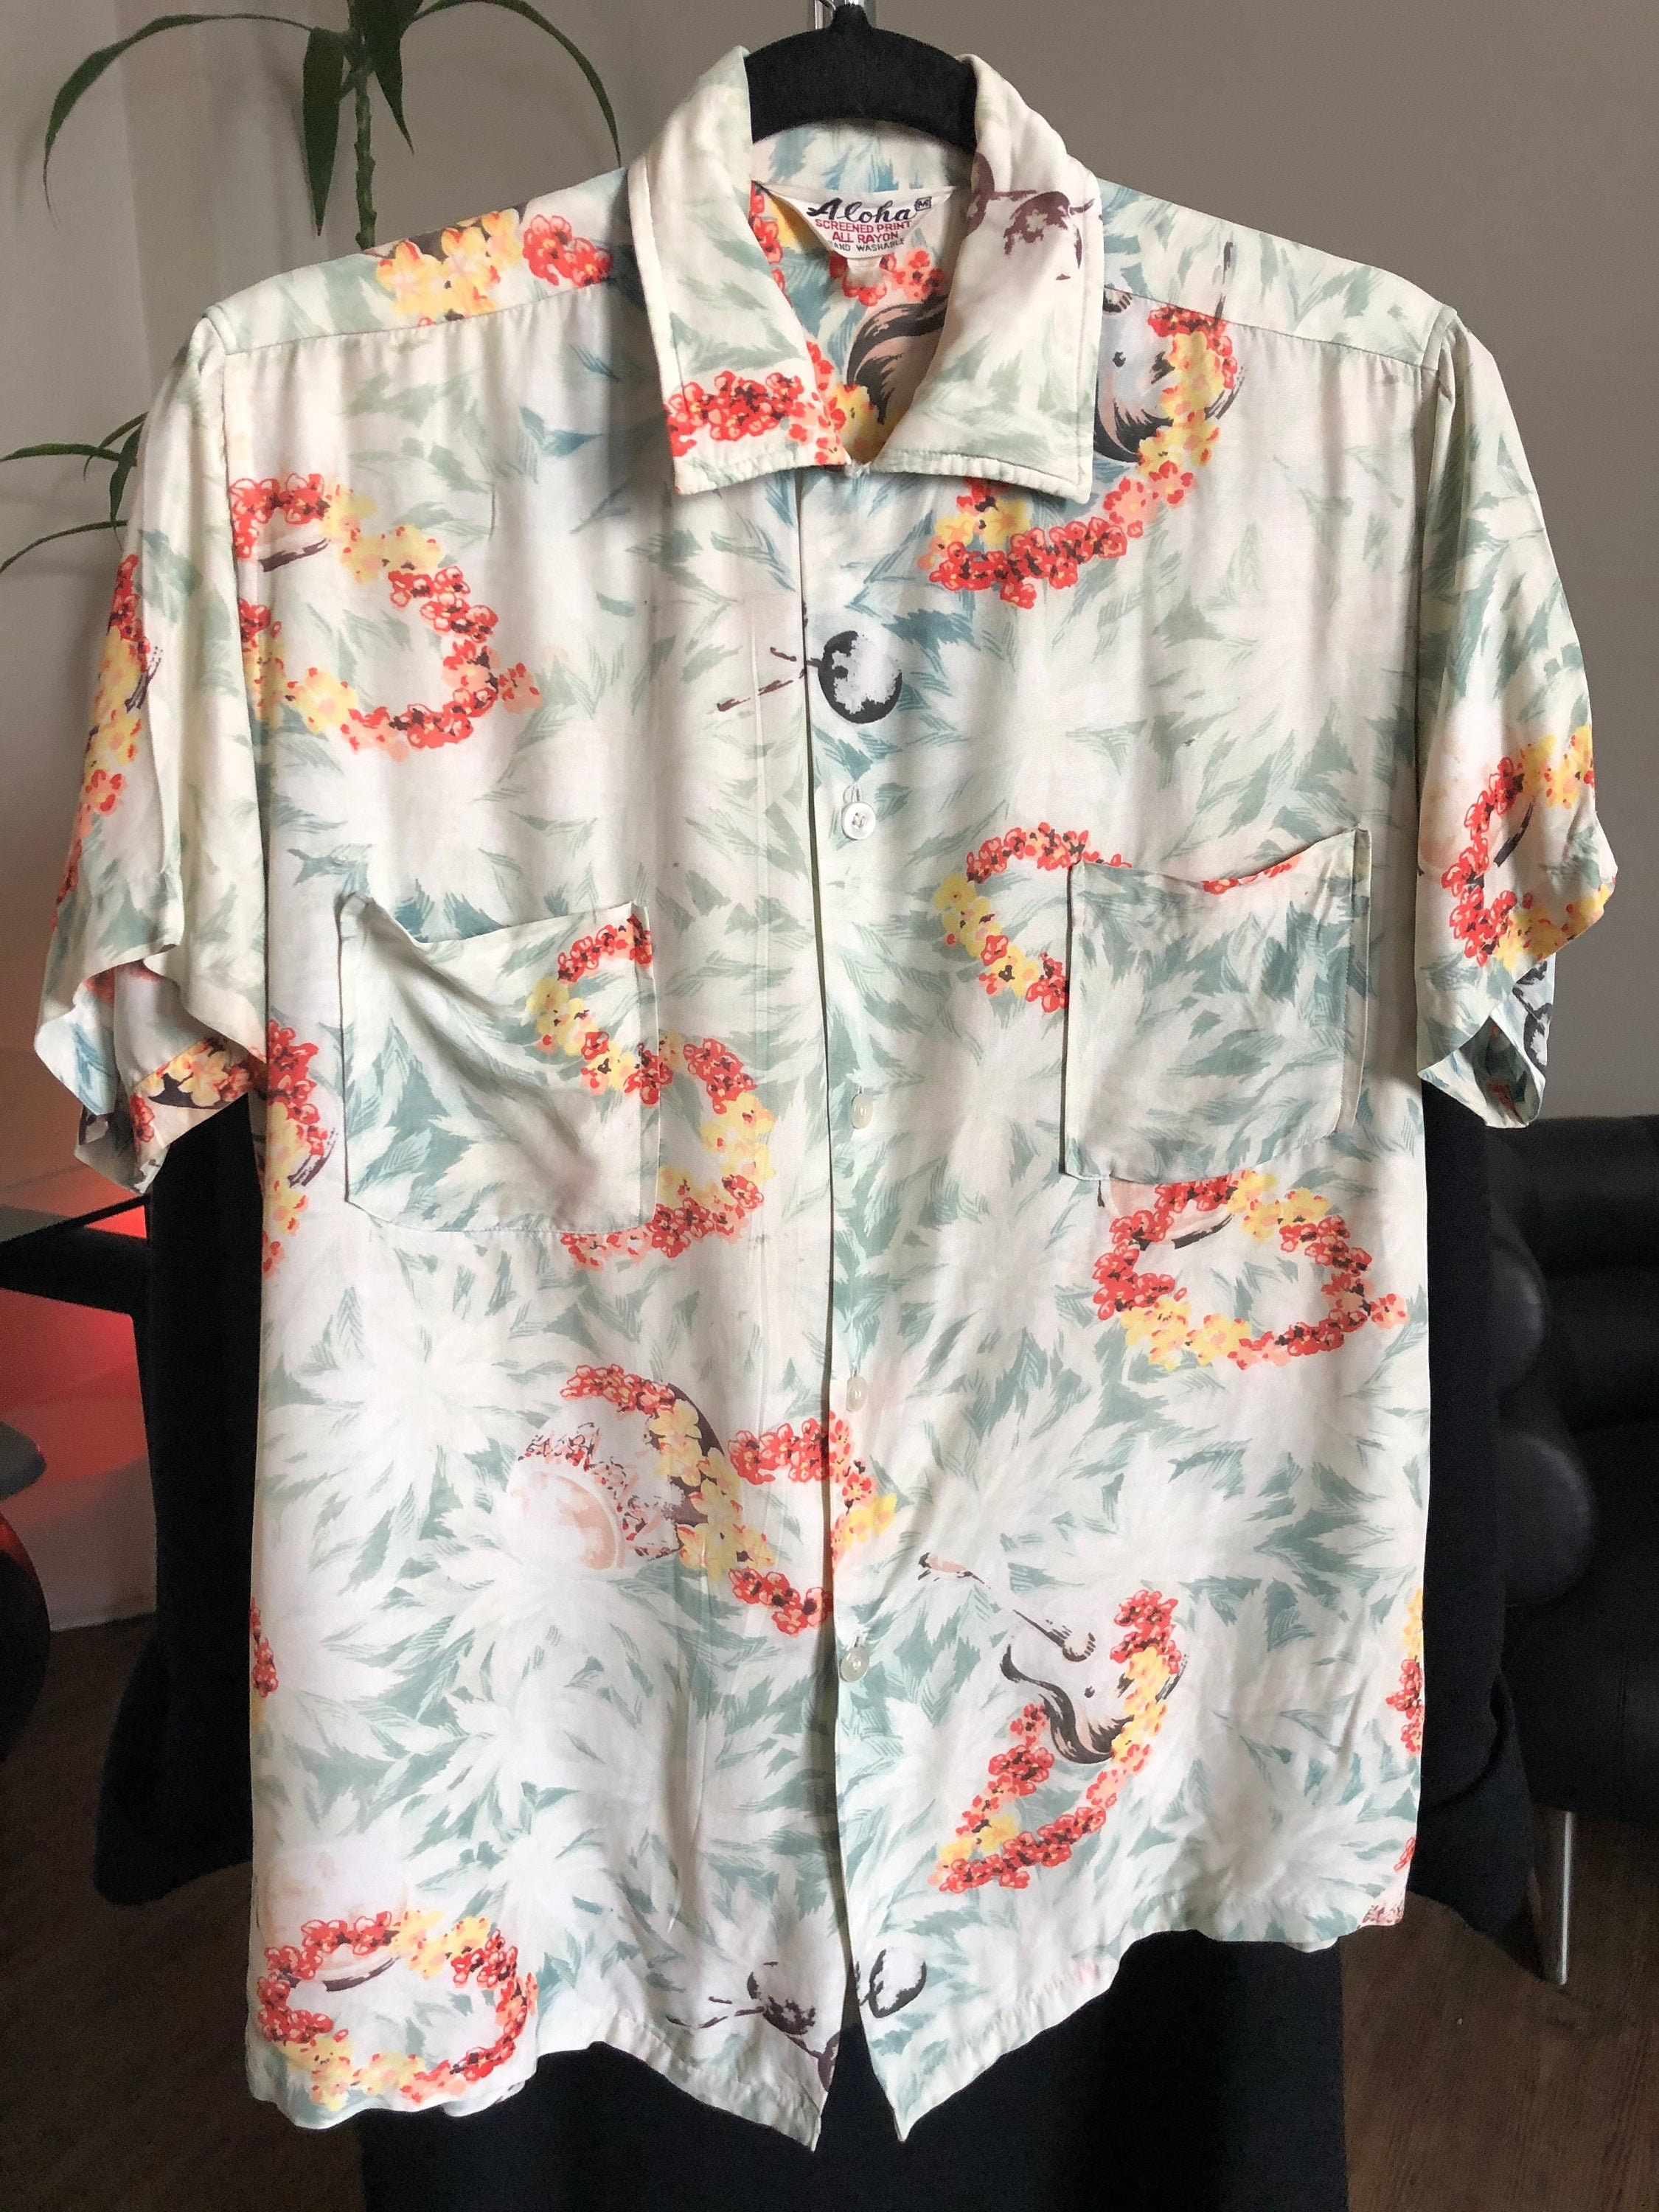 1940s Men's Shirts, Sweaters, Vests Vintage 1940s-1950s Aloha Lei Luau Hawaiian Rayon Shirt $0.00 AT vintagedancer.com